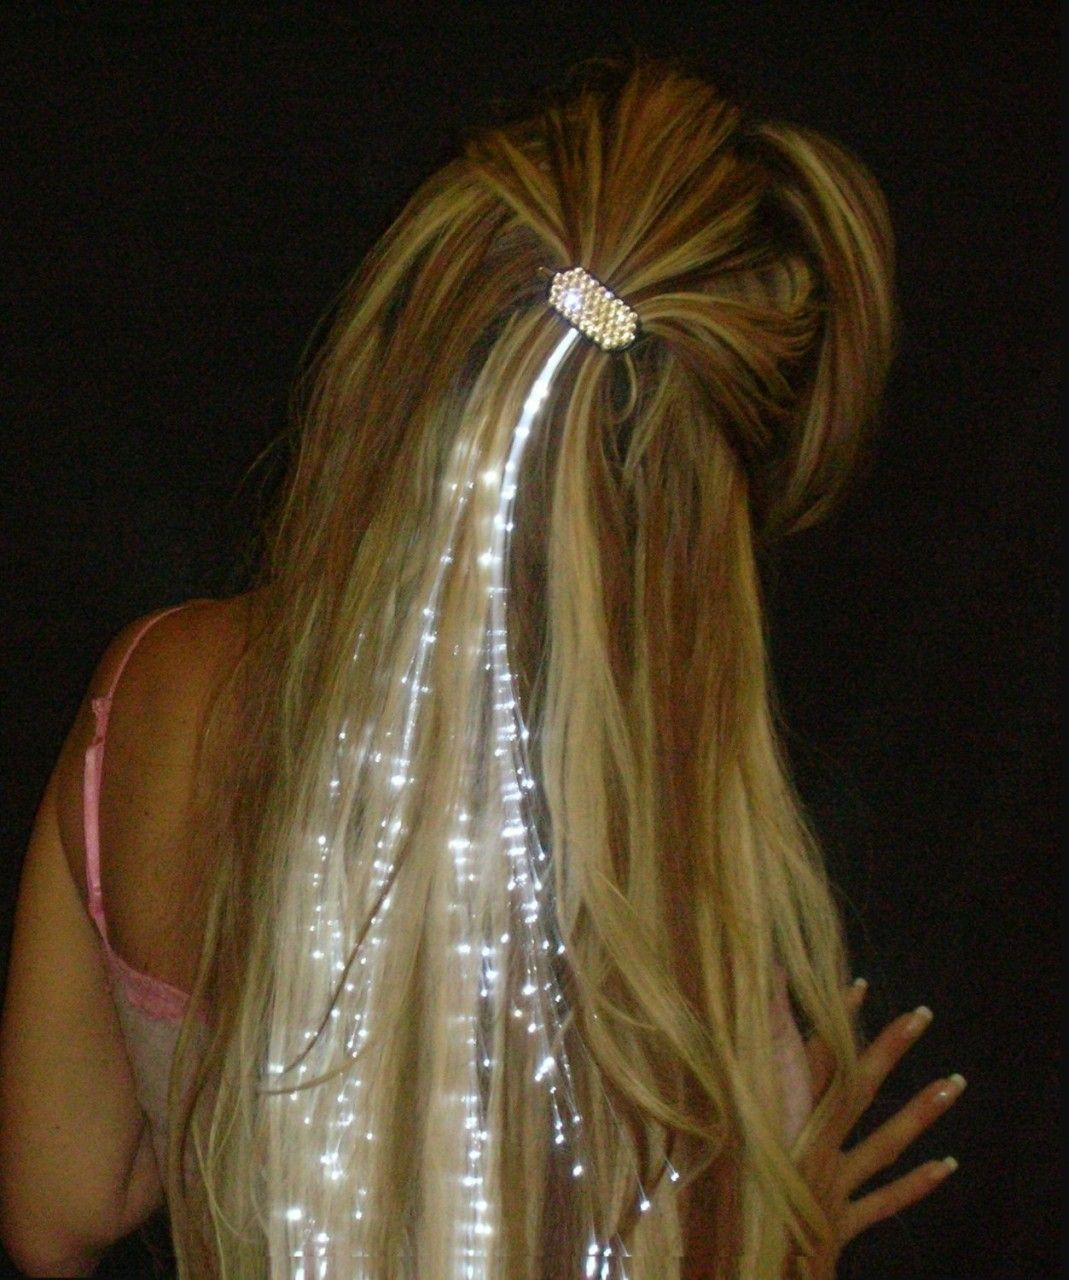 Private island party 10 ways to wear starlight fiber optic hair private island party 10 ways to wear starlight fiber optic hair extensions pmusecretfo Choice Image